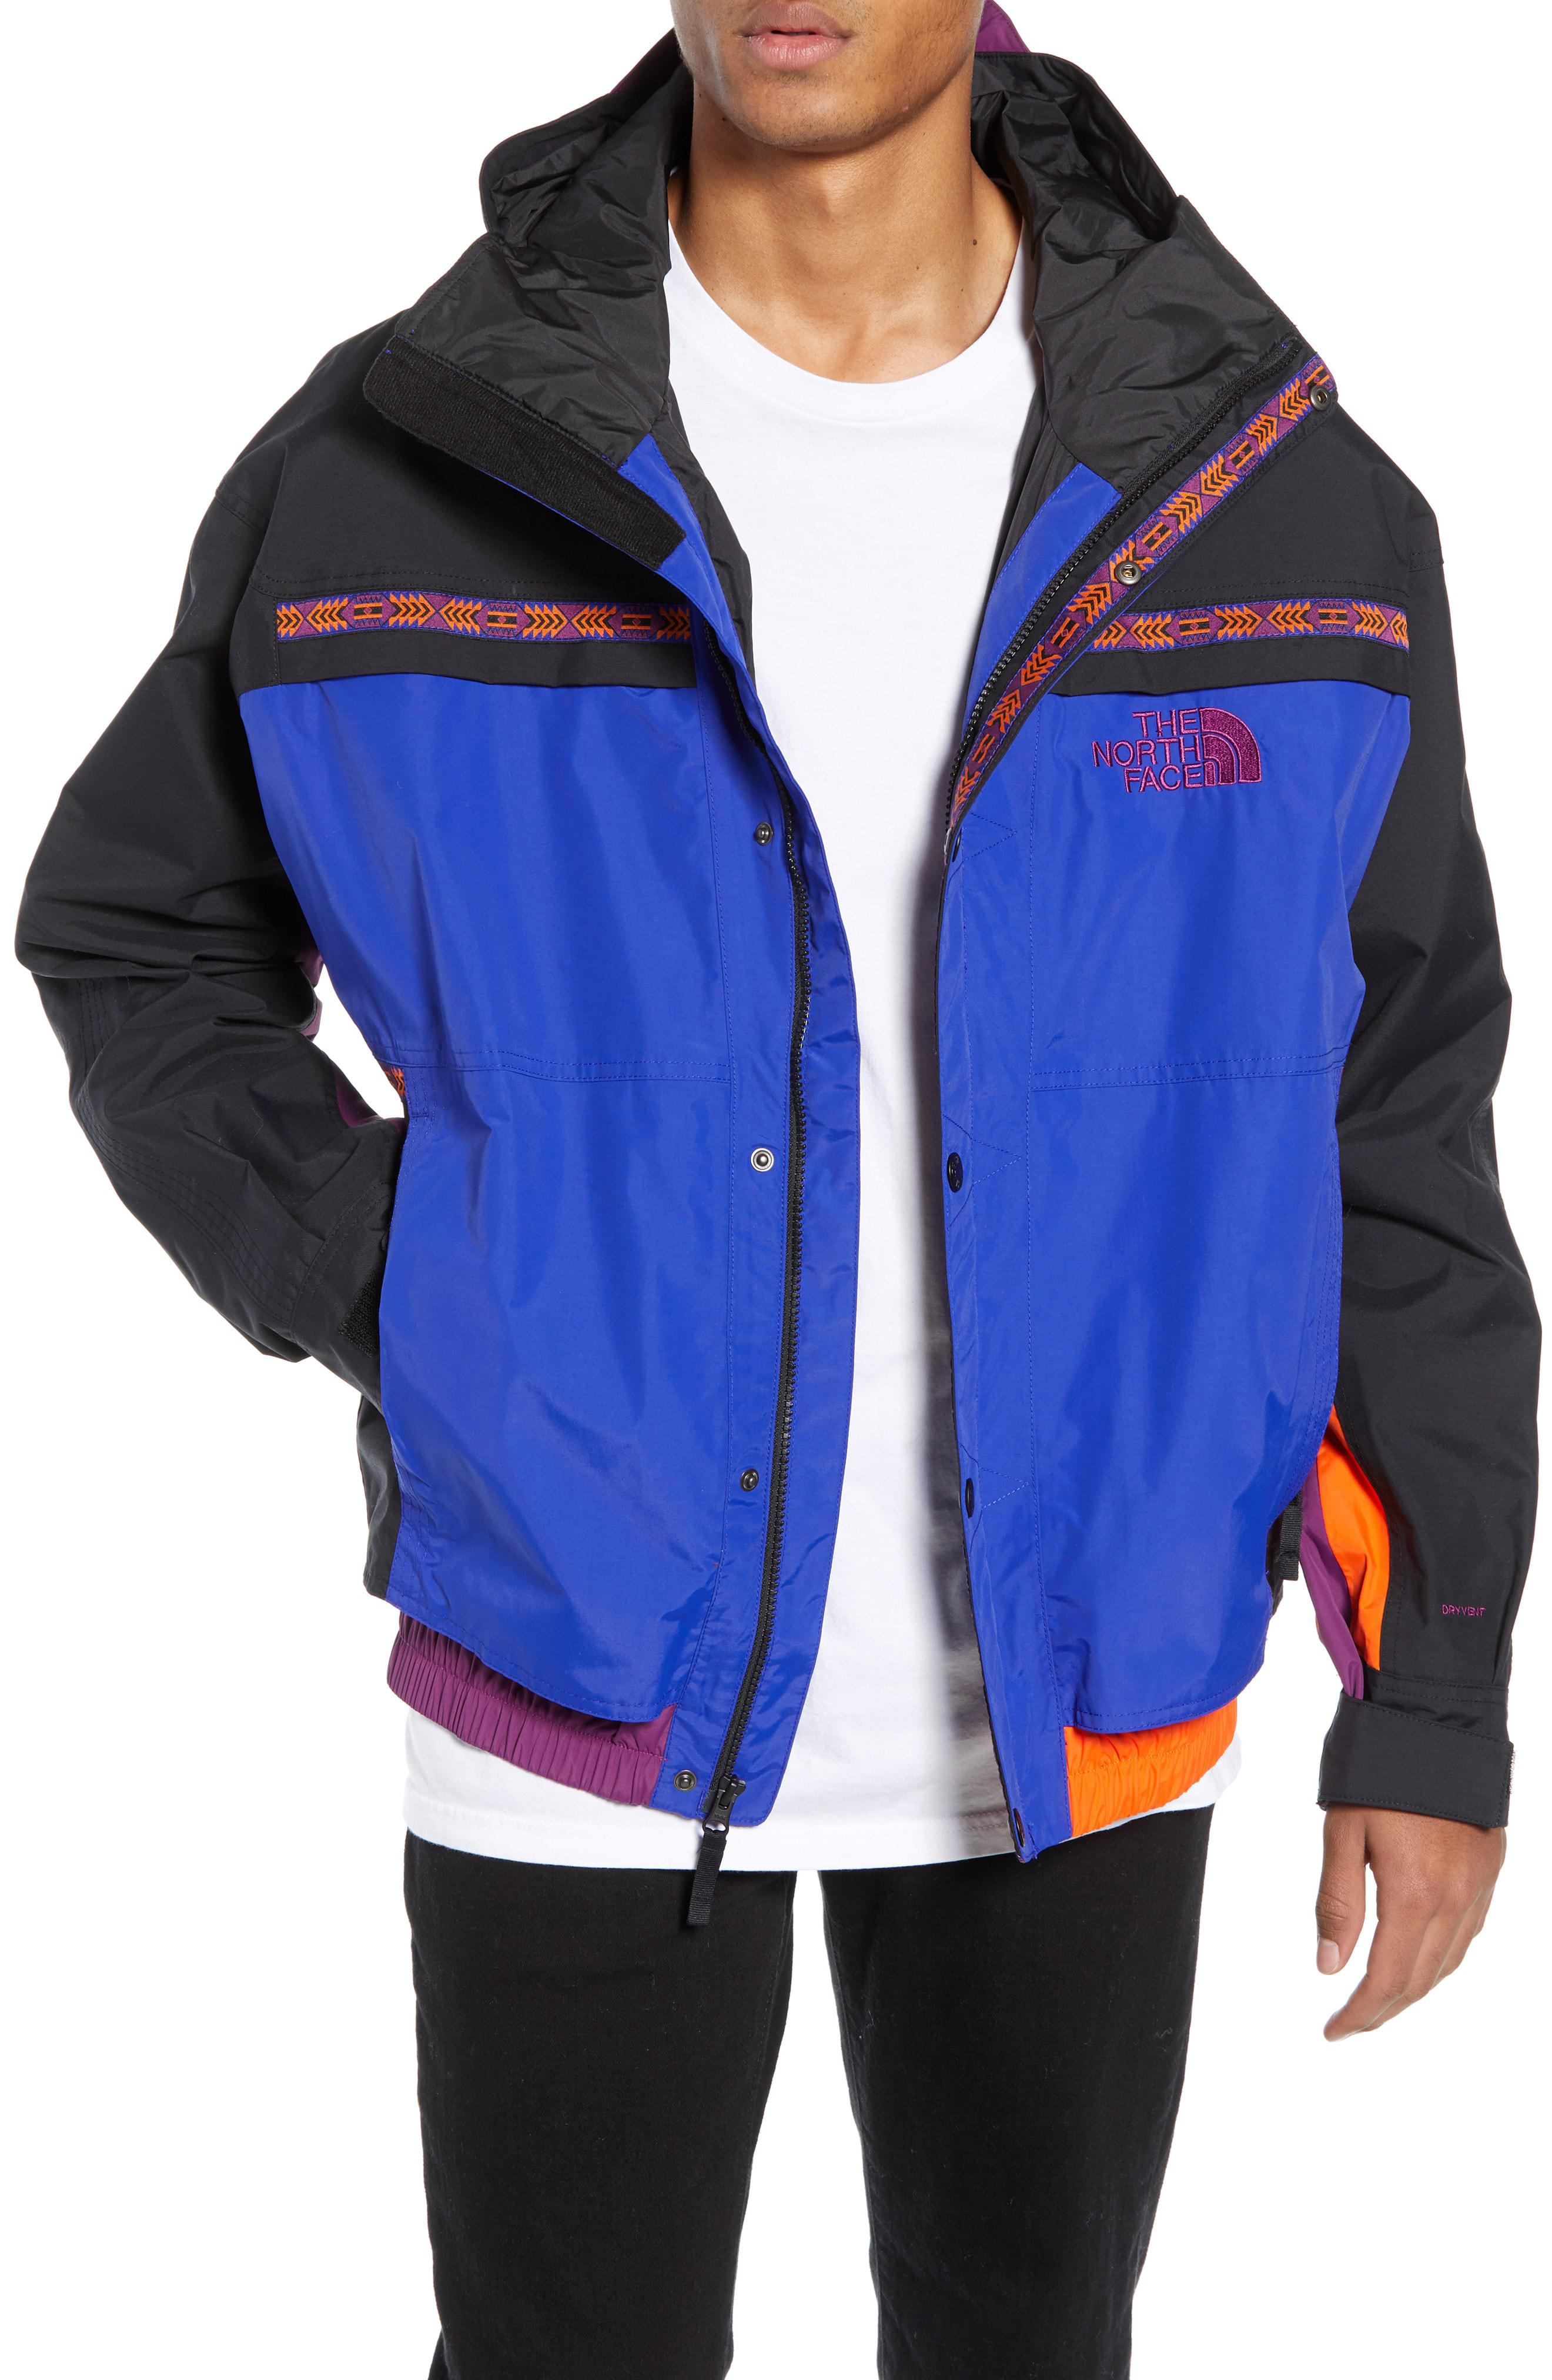 Lyst - The North Face 1992 Rage Collection Rain Jacket in Blue for ... d3d357dfcc